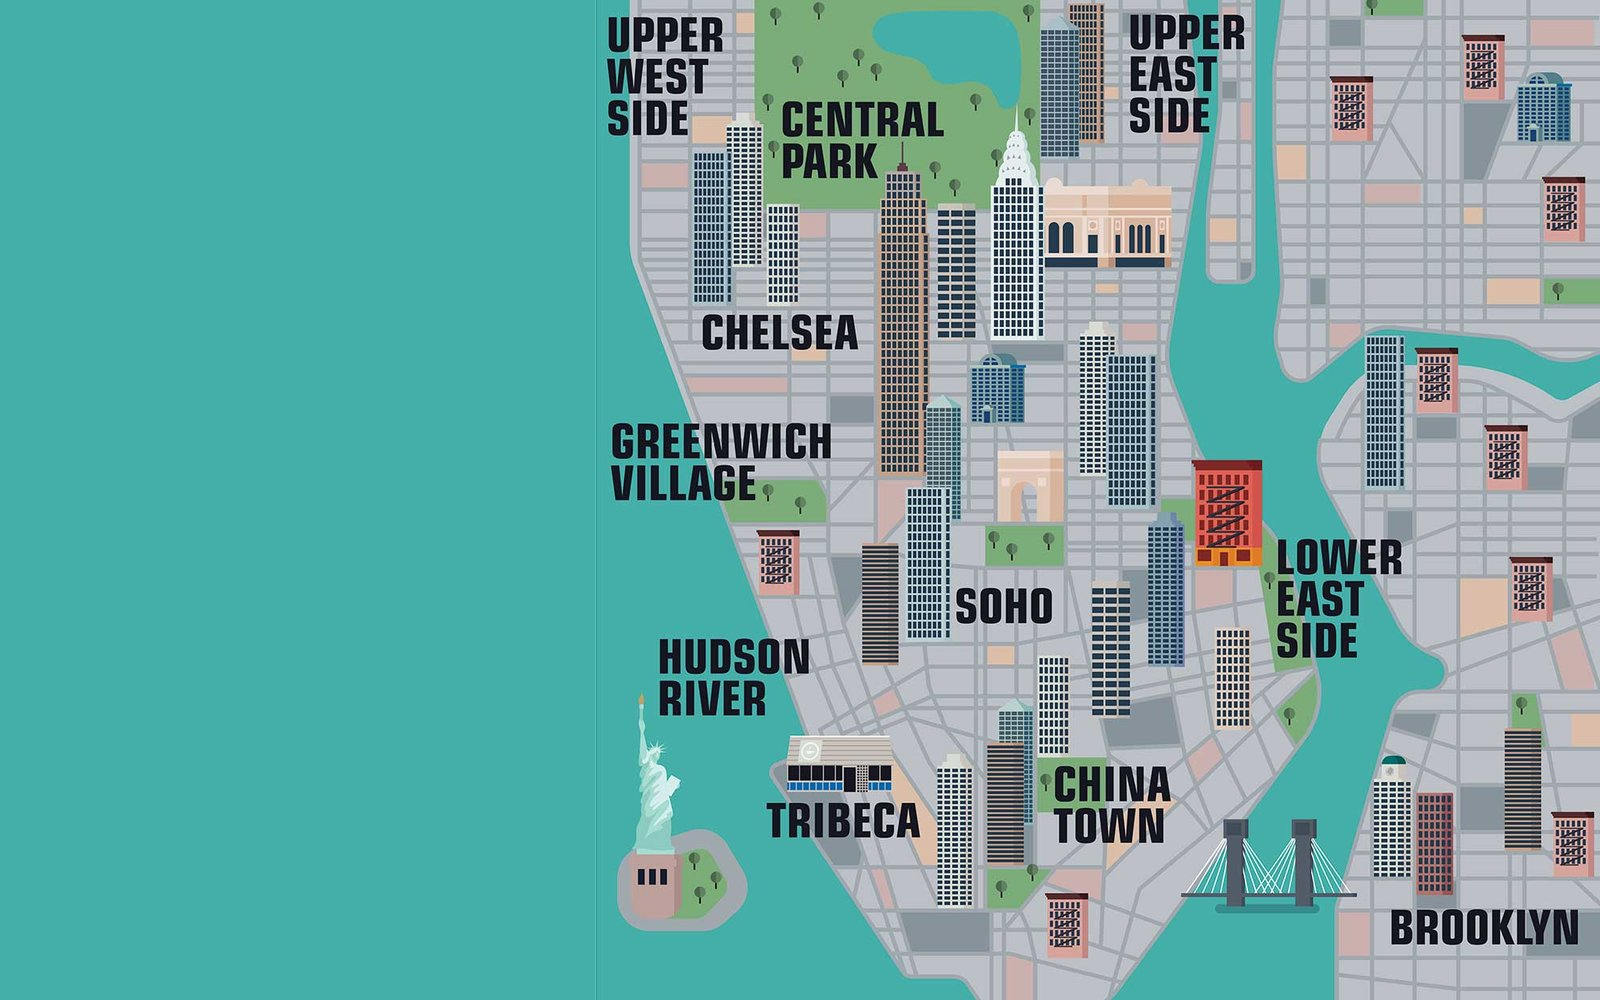 Lower East Side New York Map.Explore Thousands Of New York City Landmarks With This Interactive